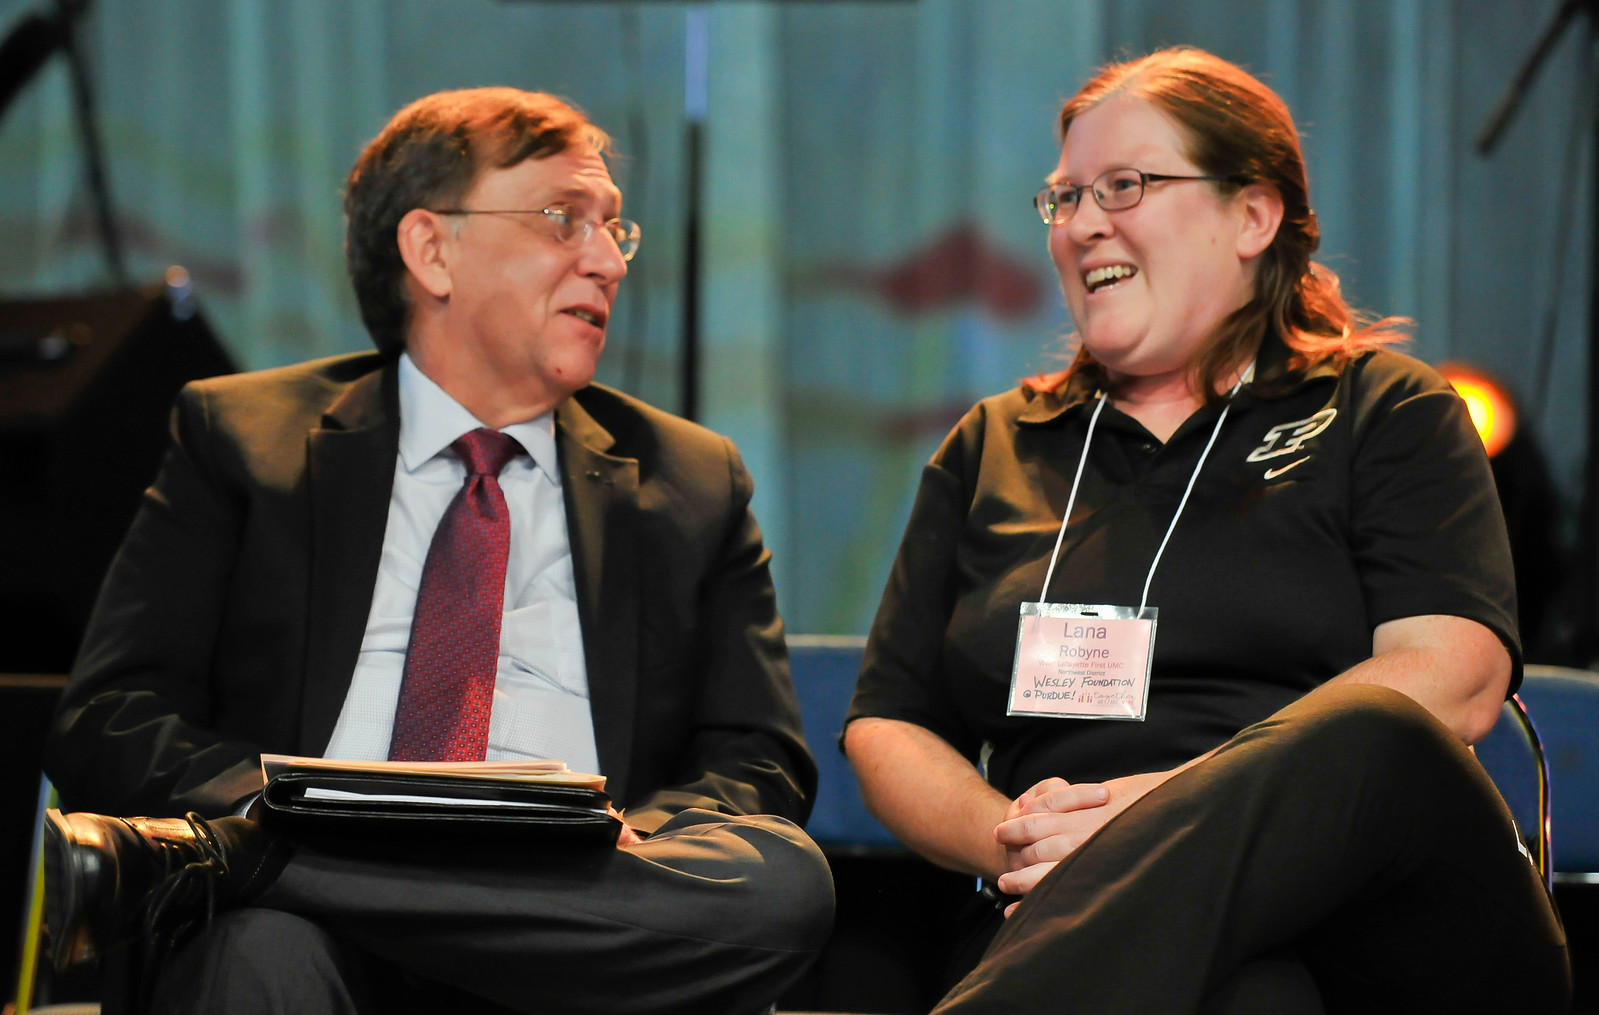 Tom Heaton talks to Lana Robyne of Wesley Foundation at Purdue at the Friday Plenary at the 2017 INUMC Annual Conference in Indianapolis.